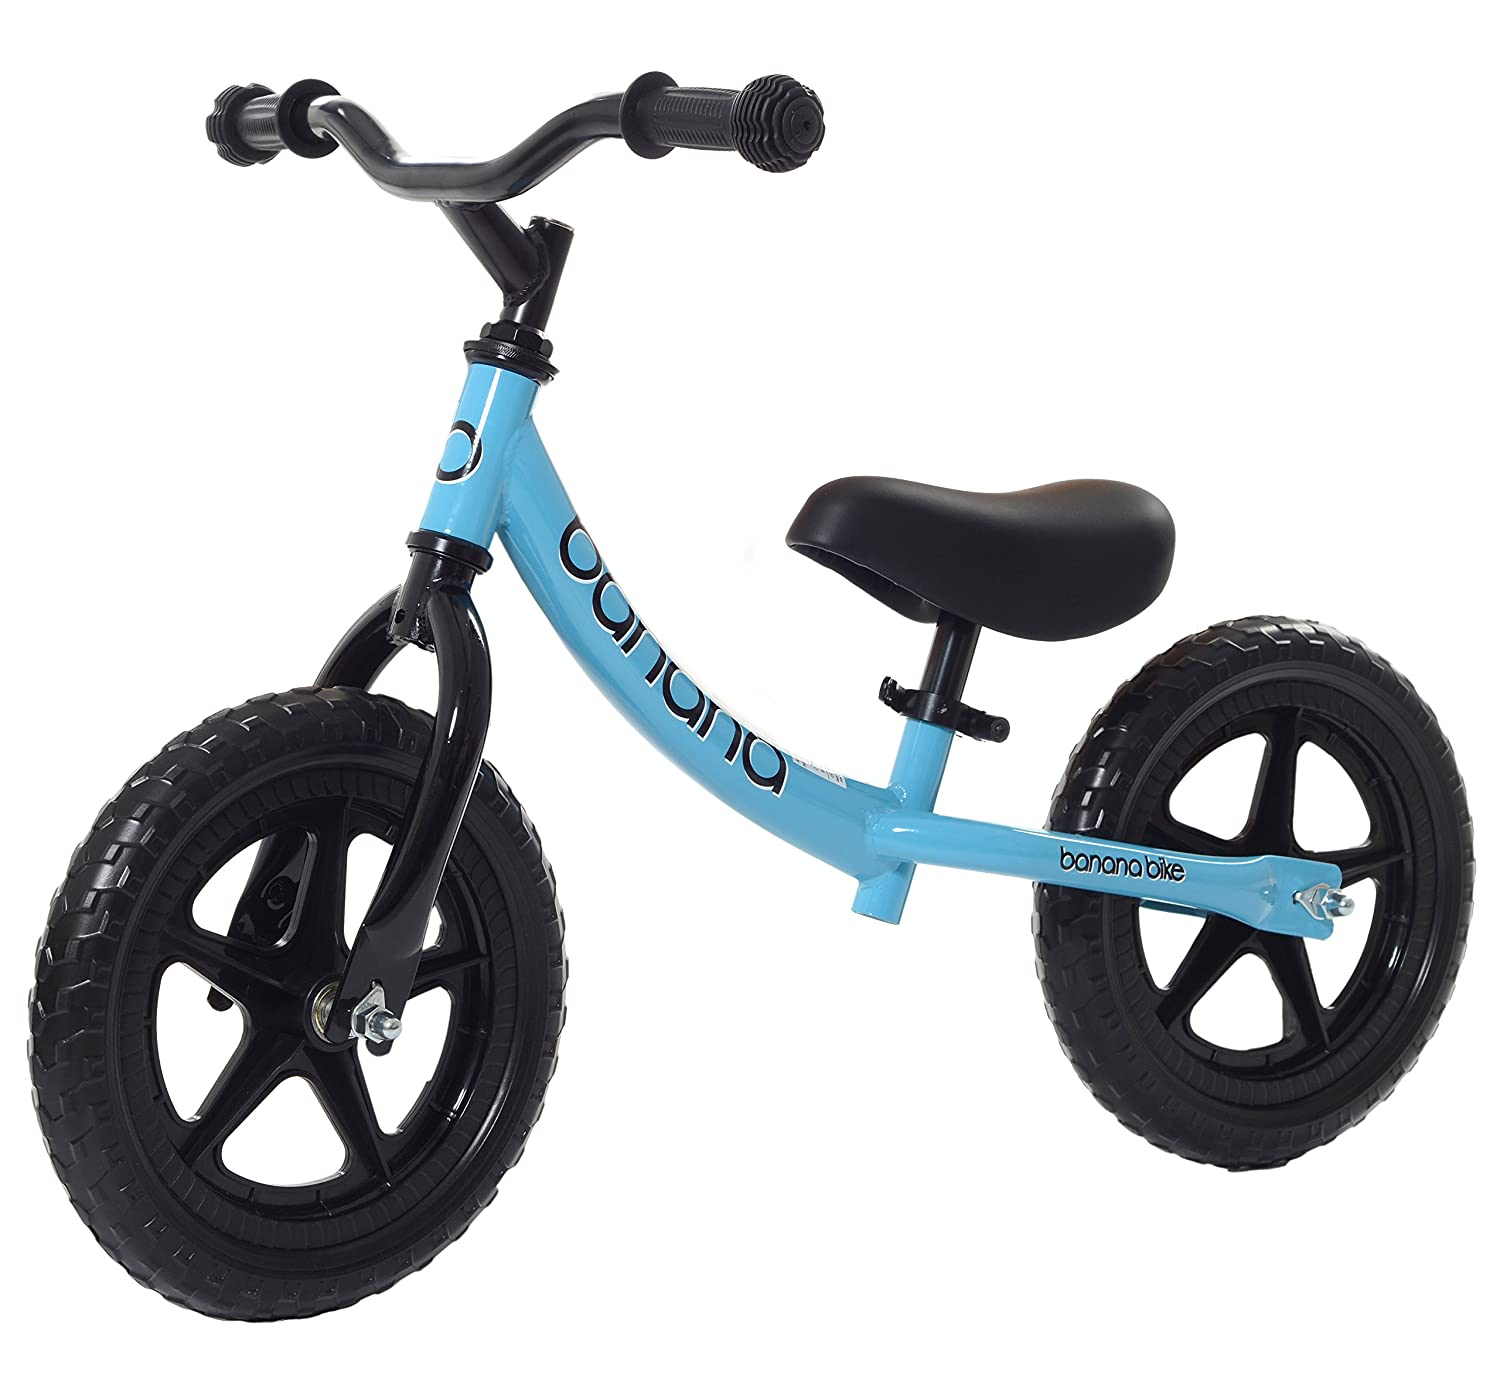 Banana Bike LT Black Friday Deals 2020